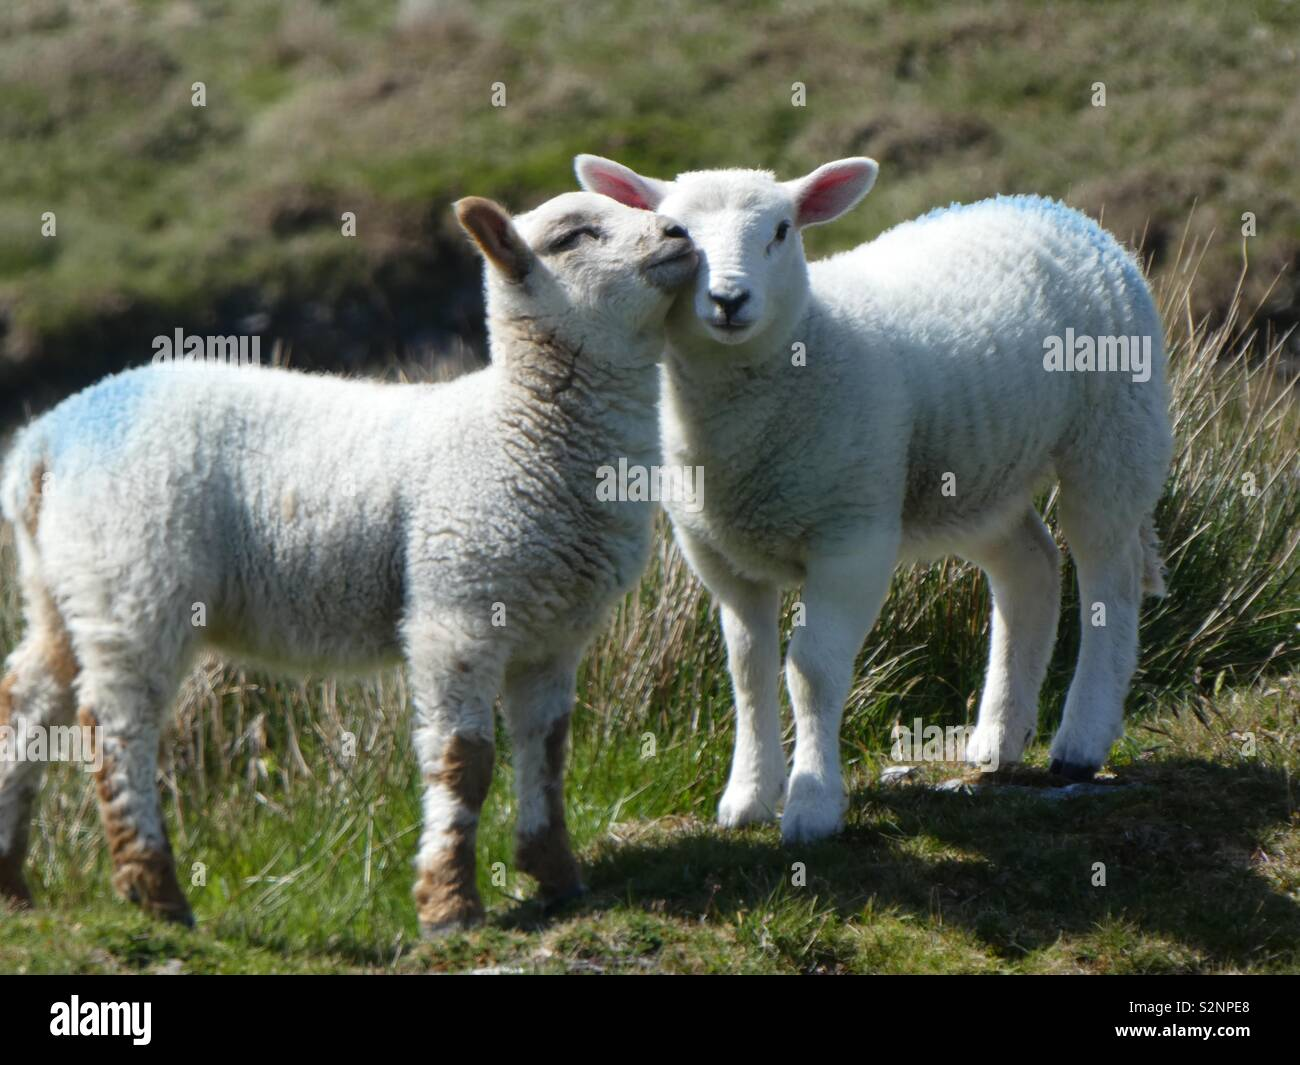 Two lambs up close - Stock Image